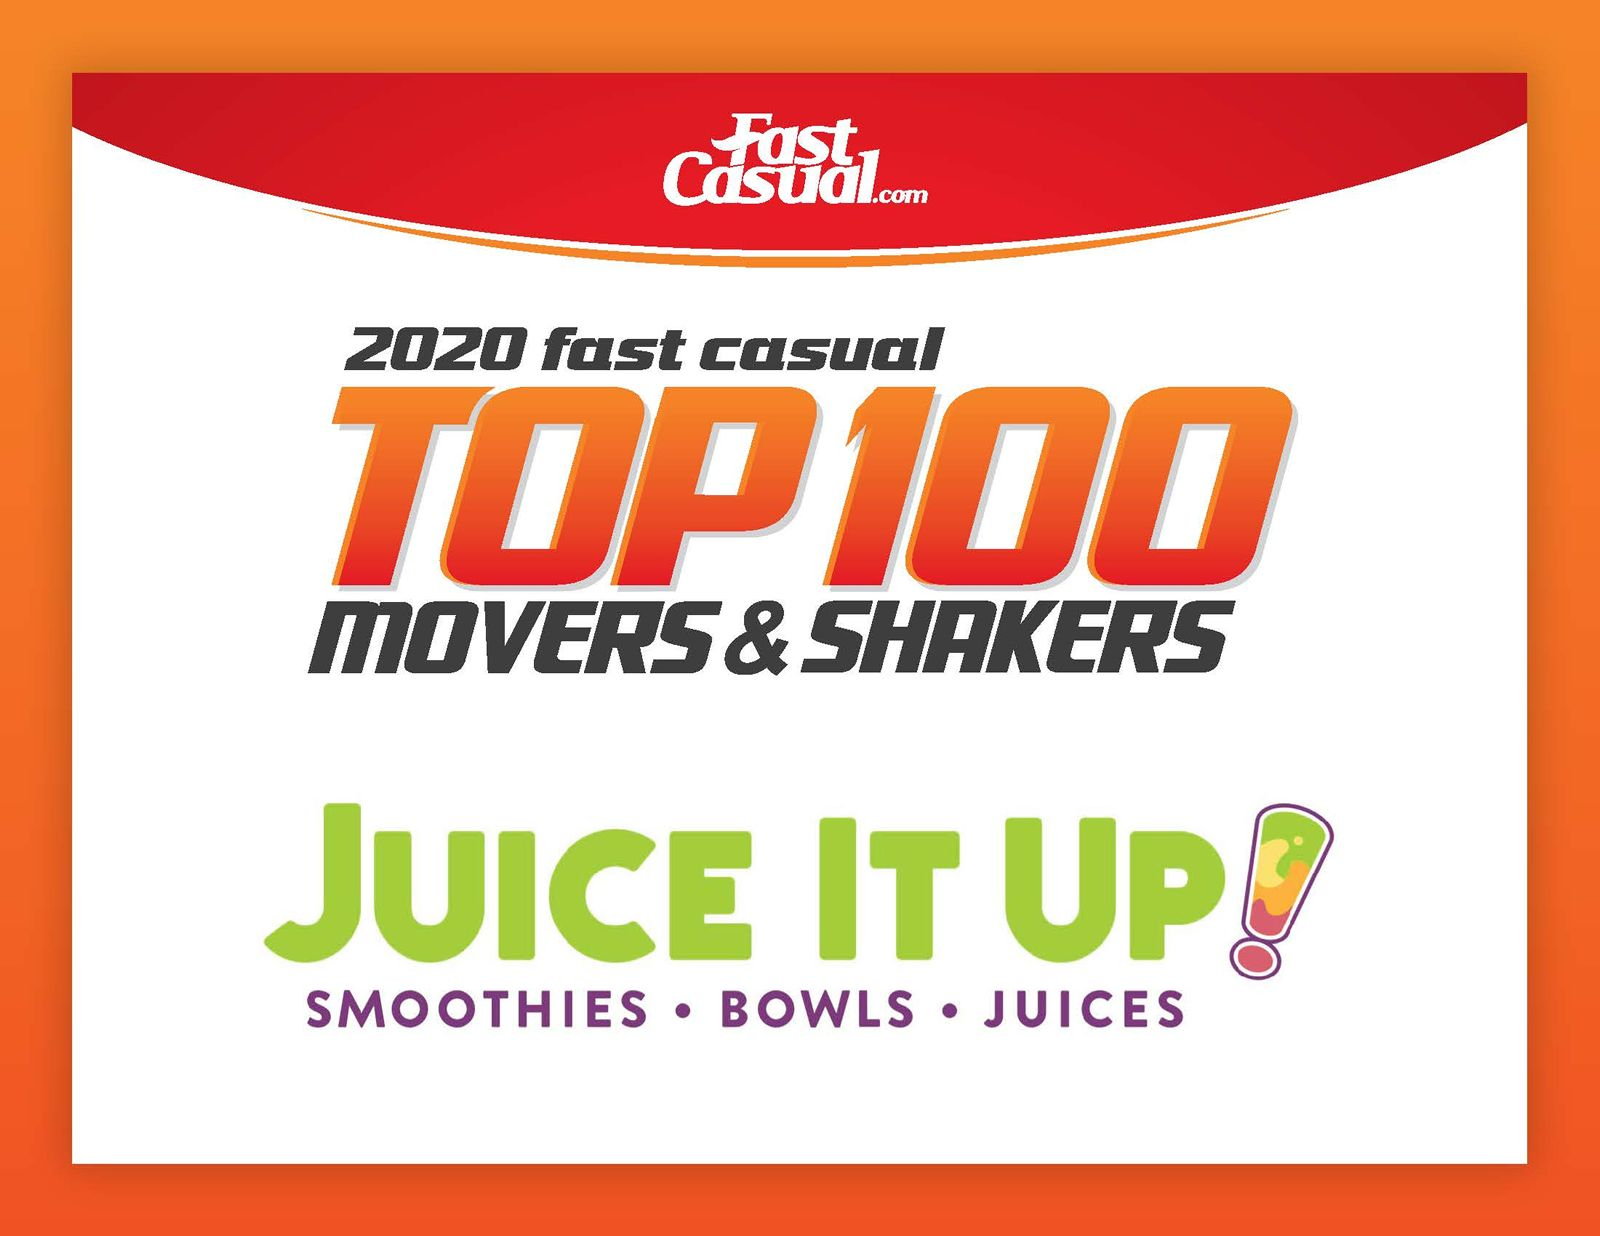 Juice It Up! Named a 2020 Fast Casual Top Mover & Shaker